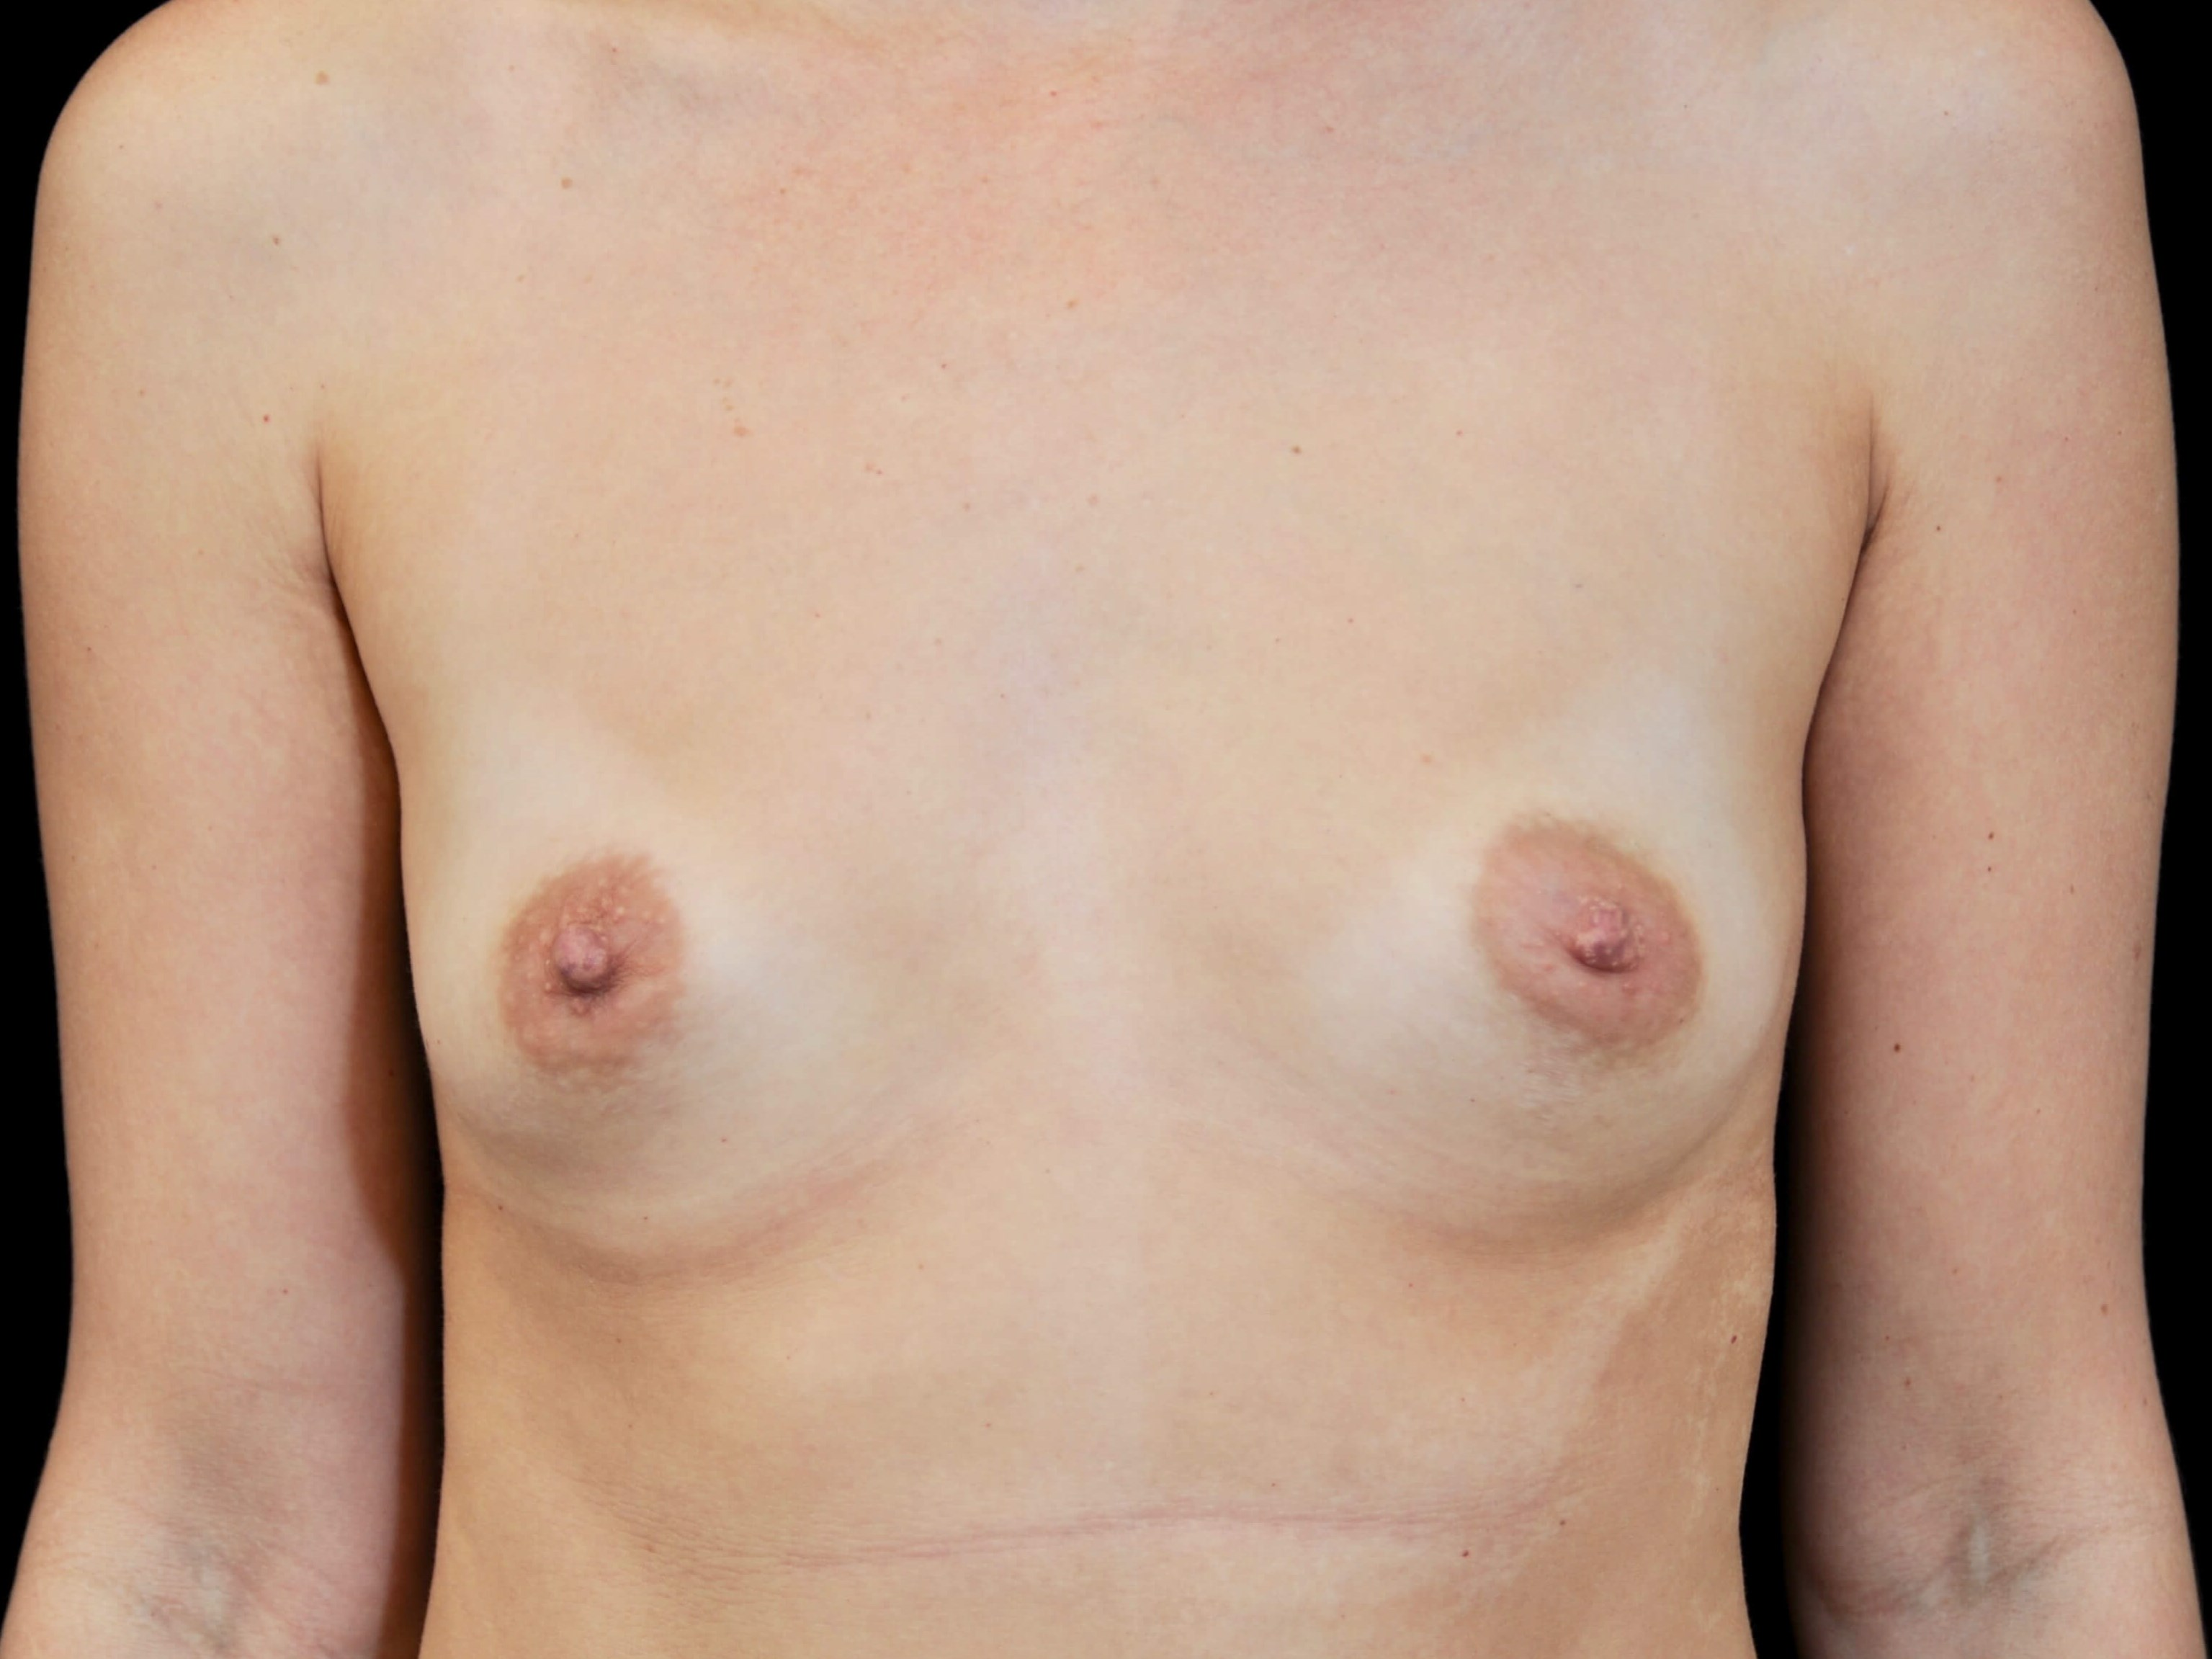 WOMAN IN DALLAS, TEXAS HAS BREAST AUGMENTATION WITH SILICONE GEL BREAST IMPLANTS